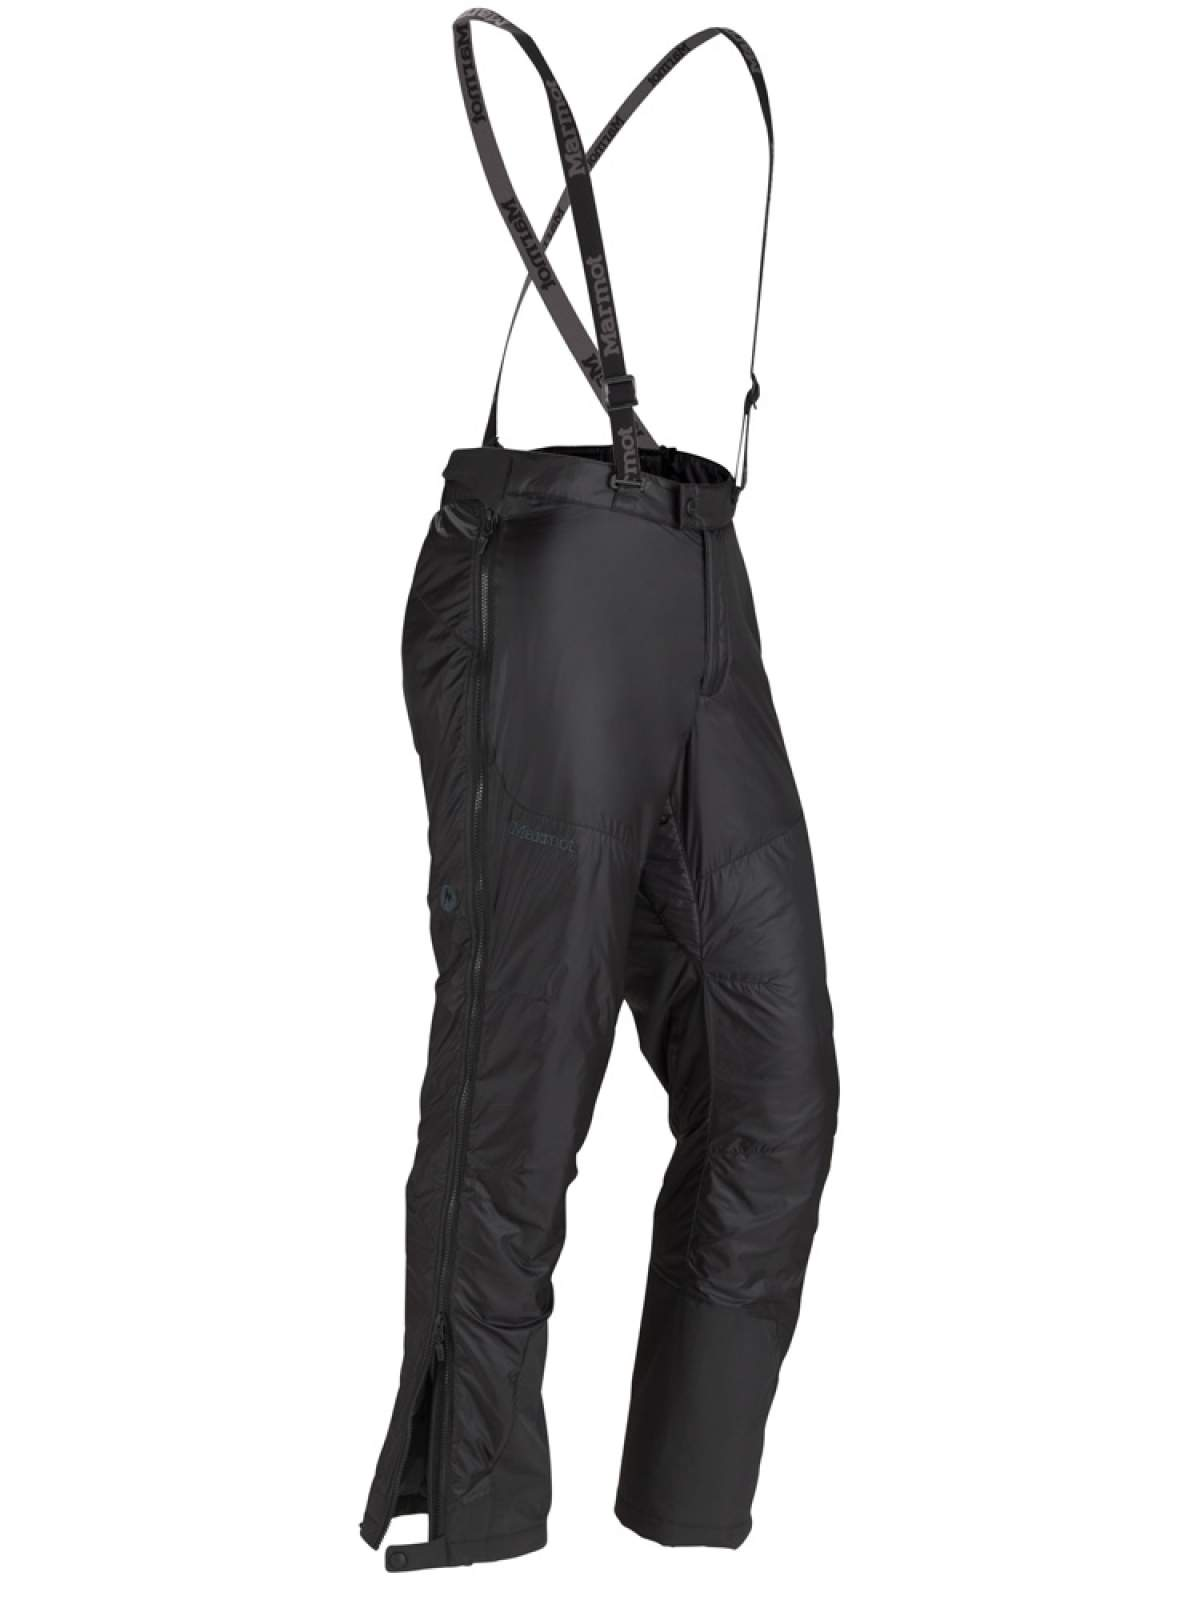 Брюки Marmot First Light Pant Муж.